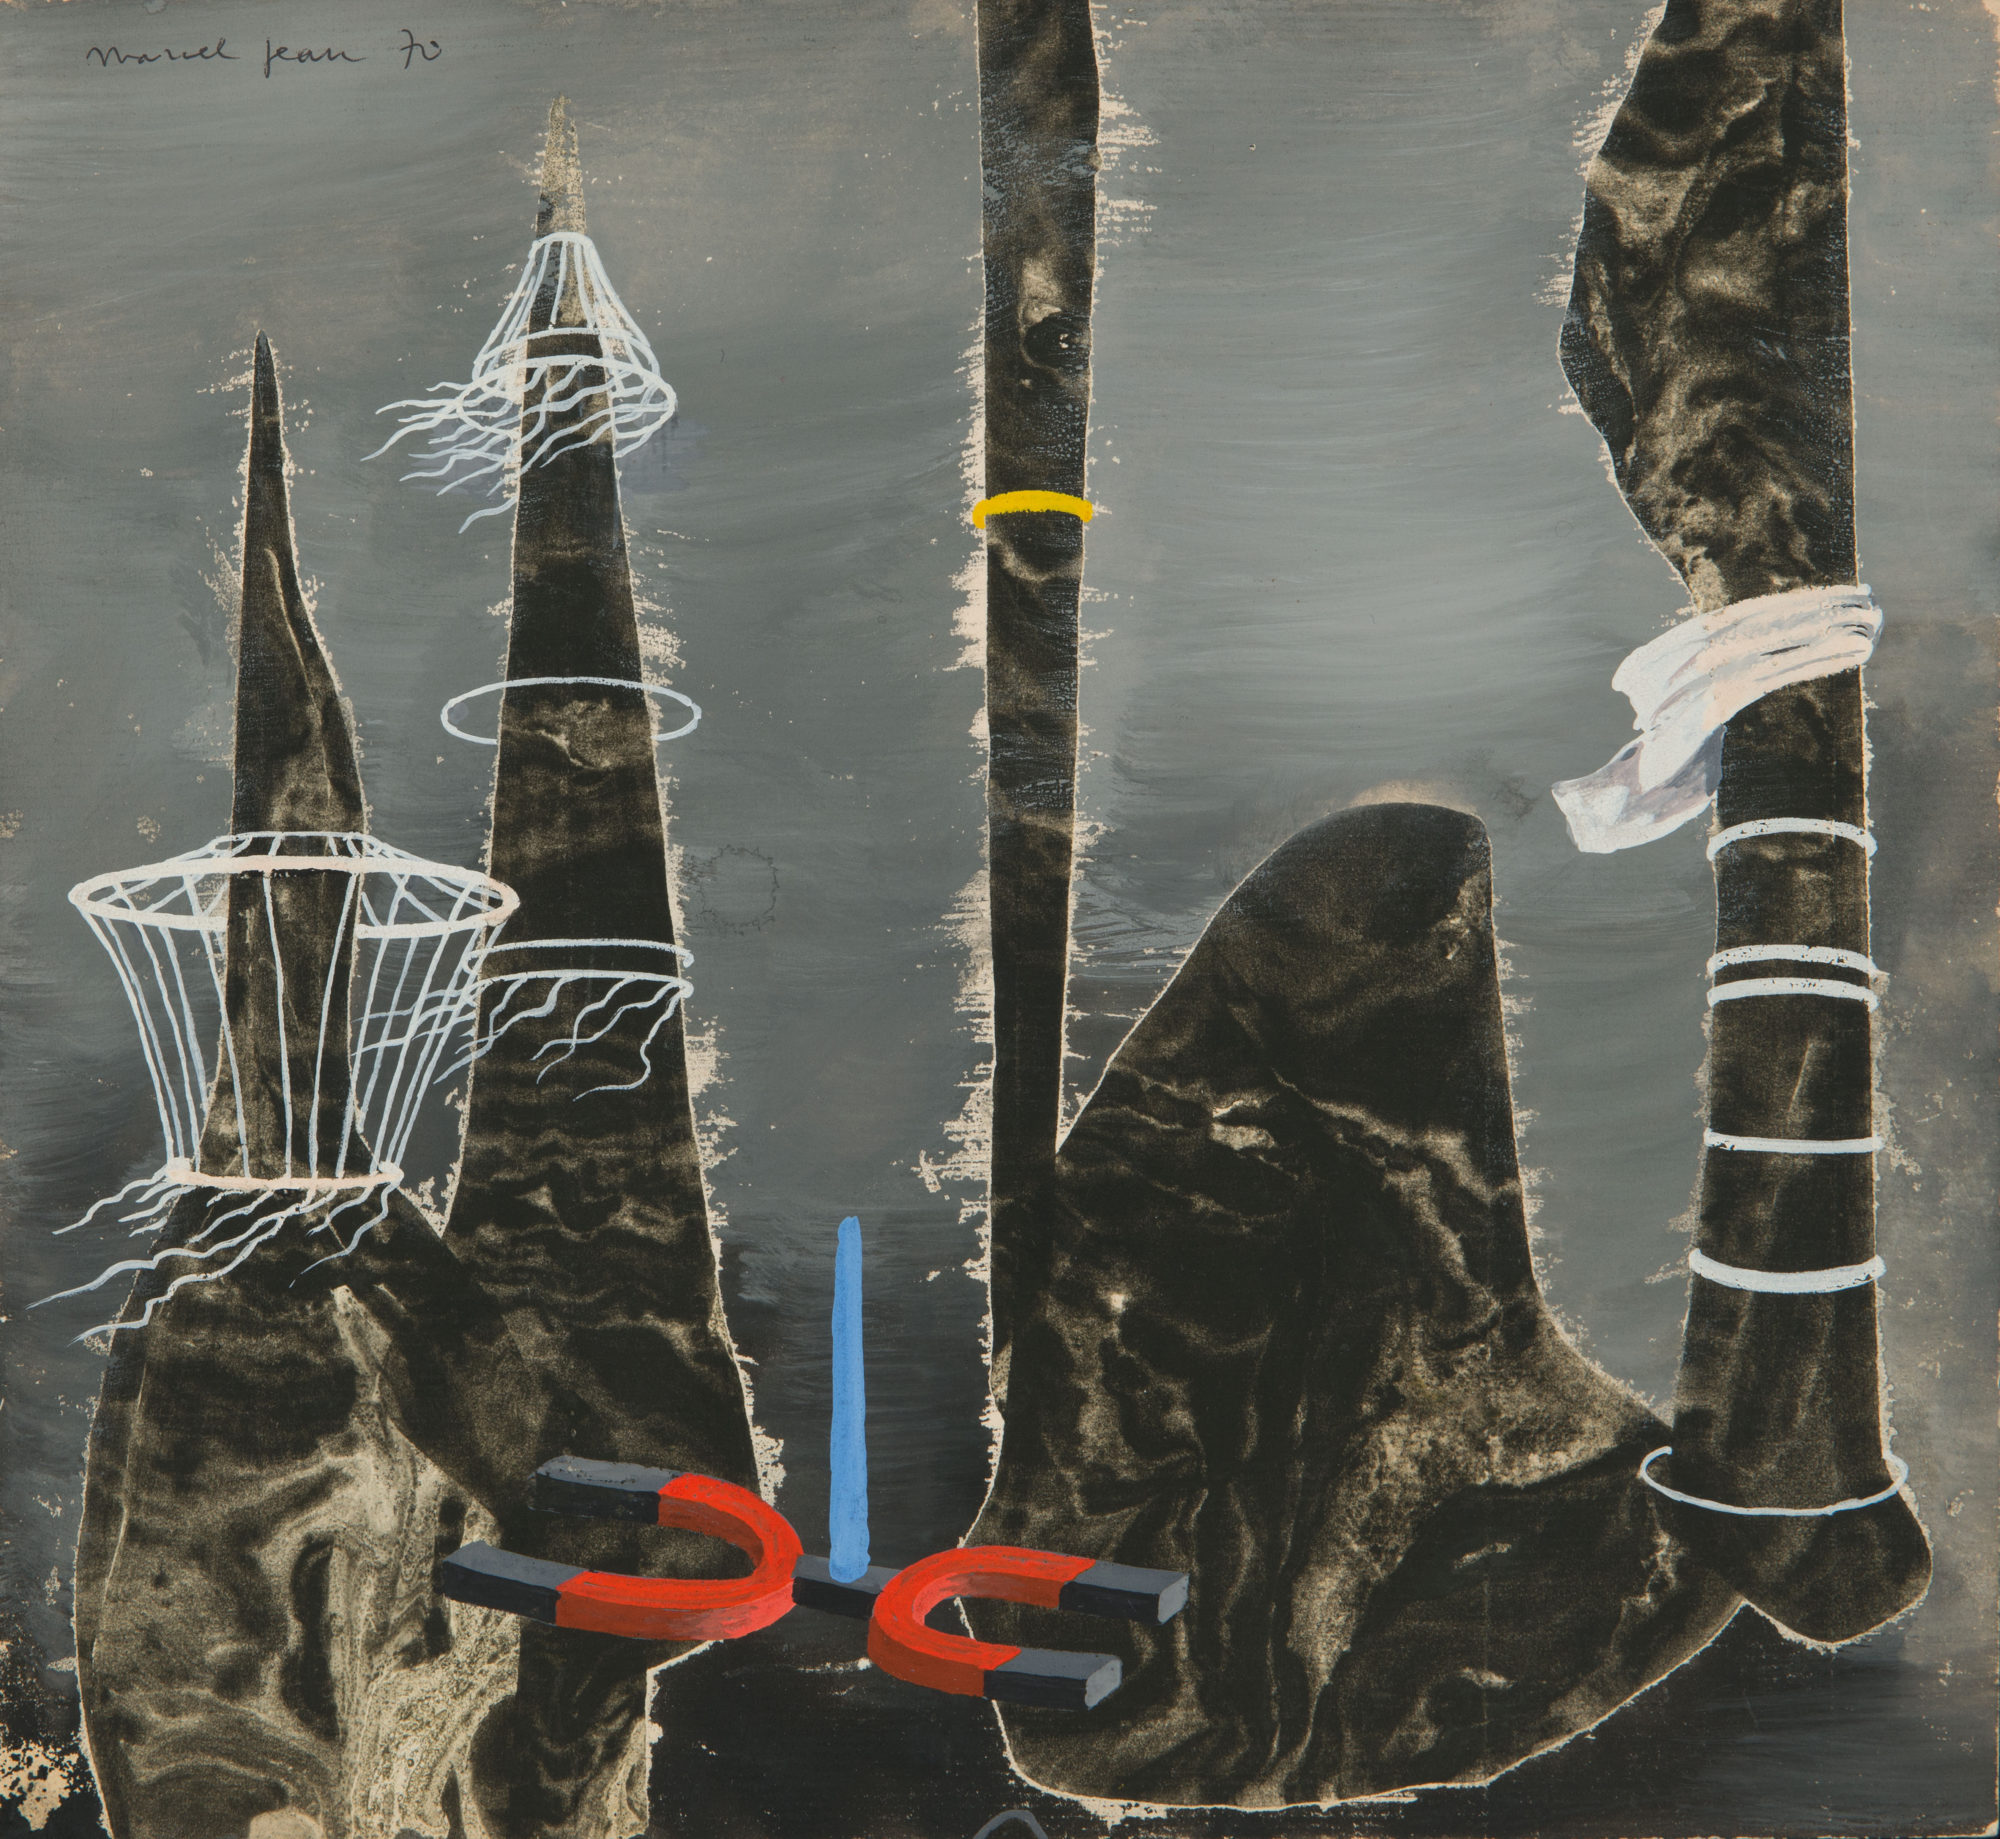 Marcel Jean,  Sonde Magnetique,  1970, Gouache and flottage on masonite board, 9 9/16 x 10 5/8 inches (24.4 x 27 cm)